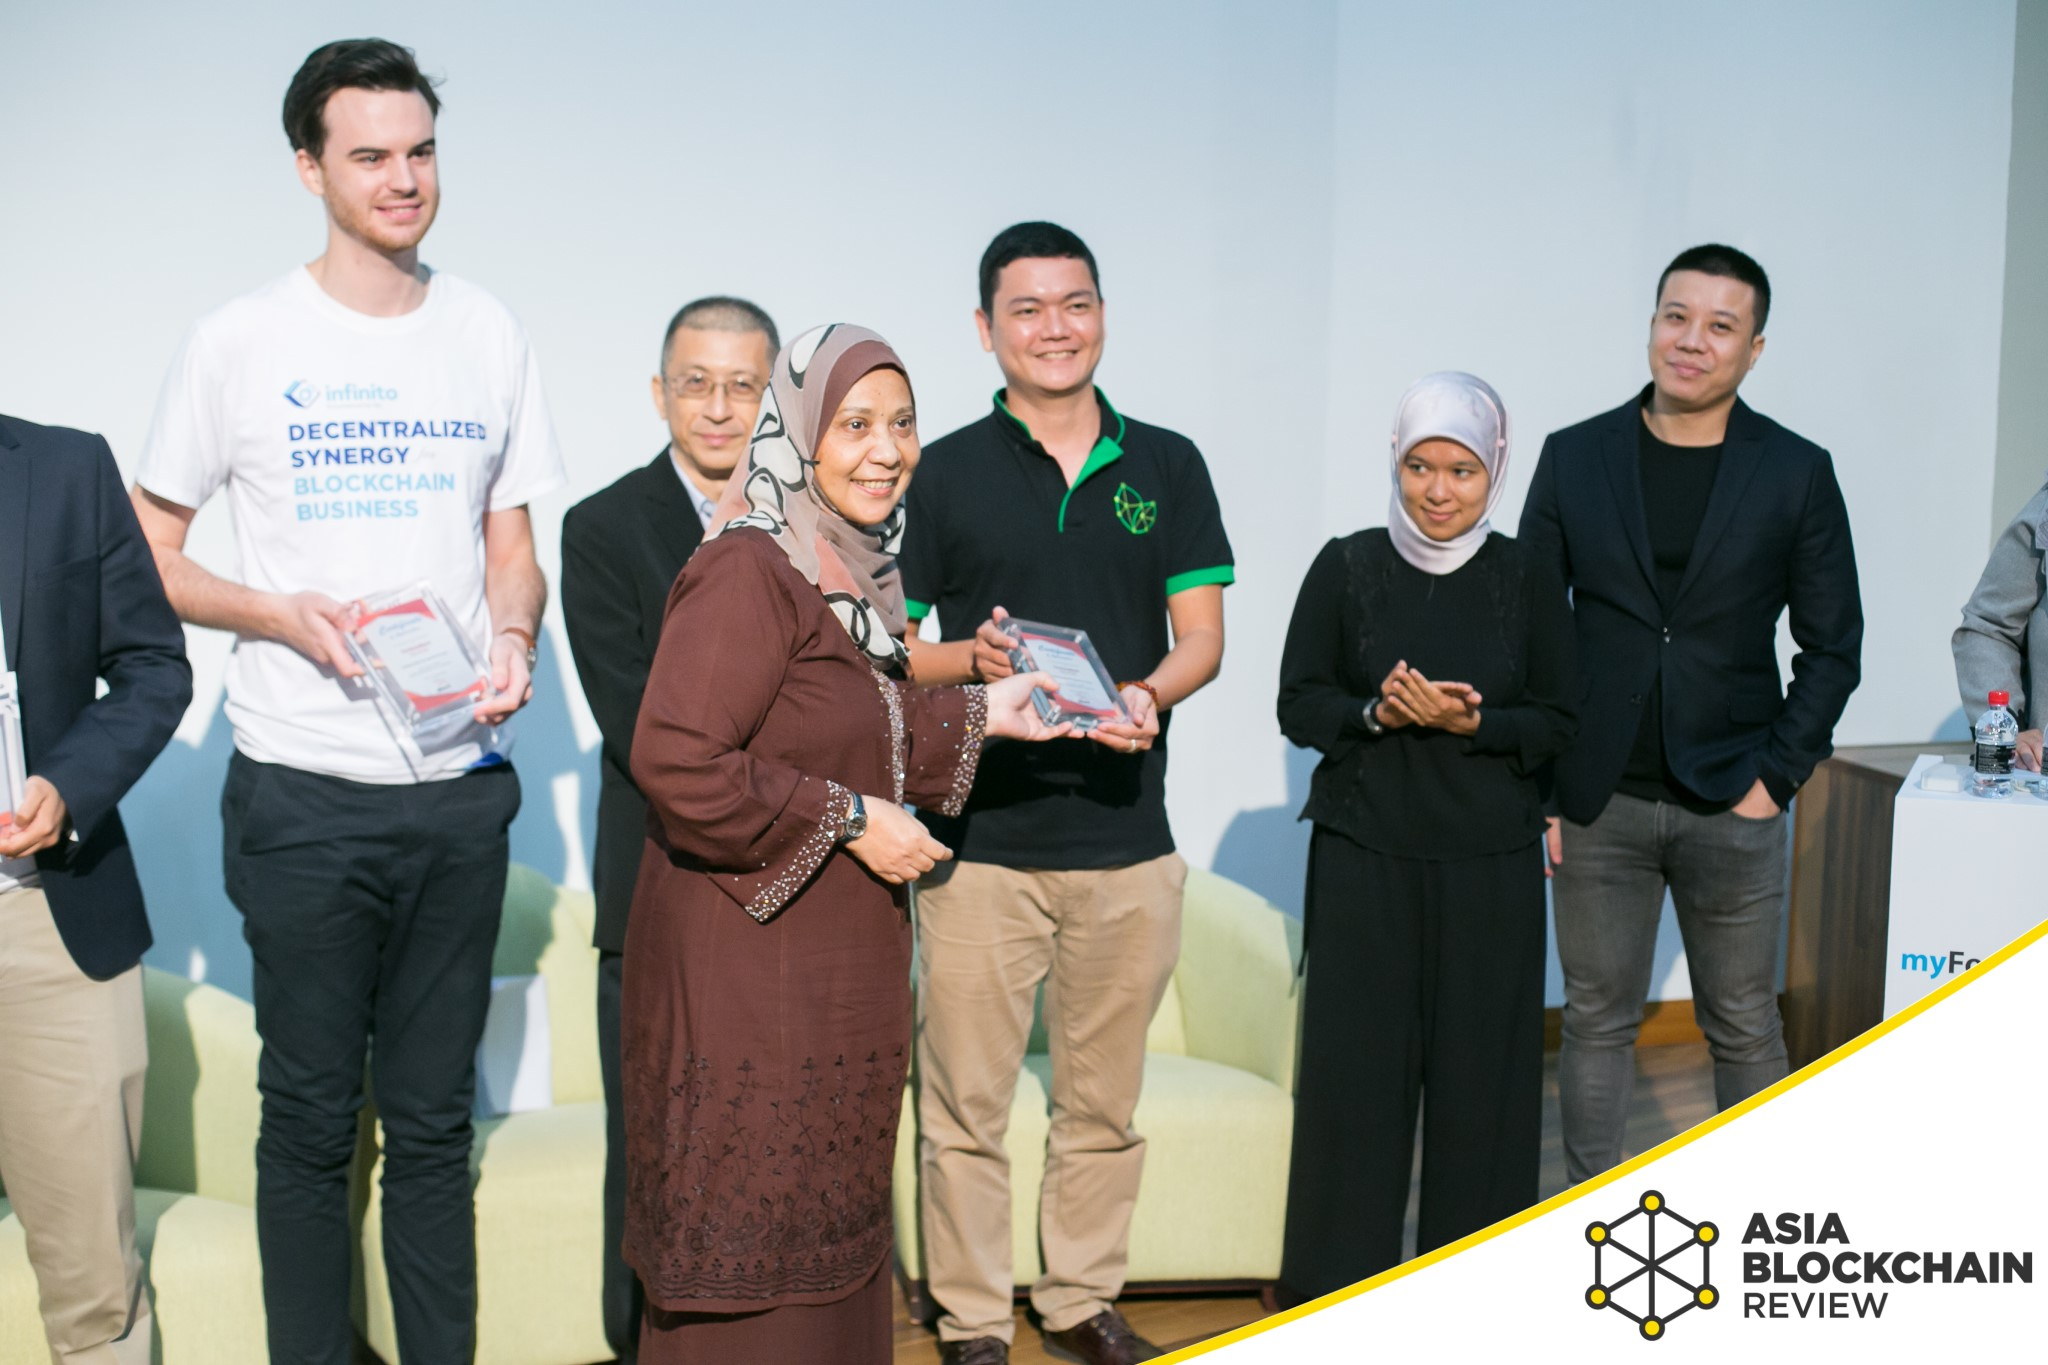 IBL Teams Inspire at TECHNOMART Blockchain in Malaysia